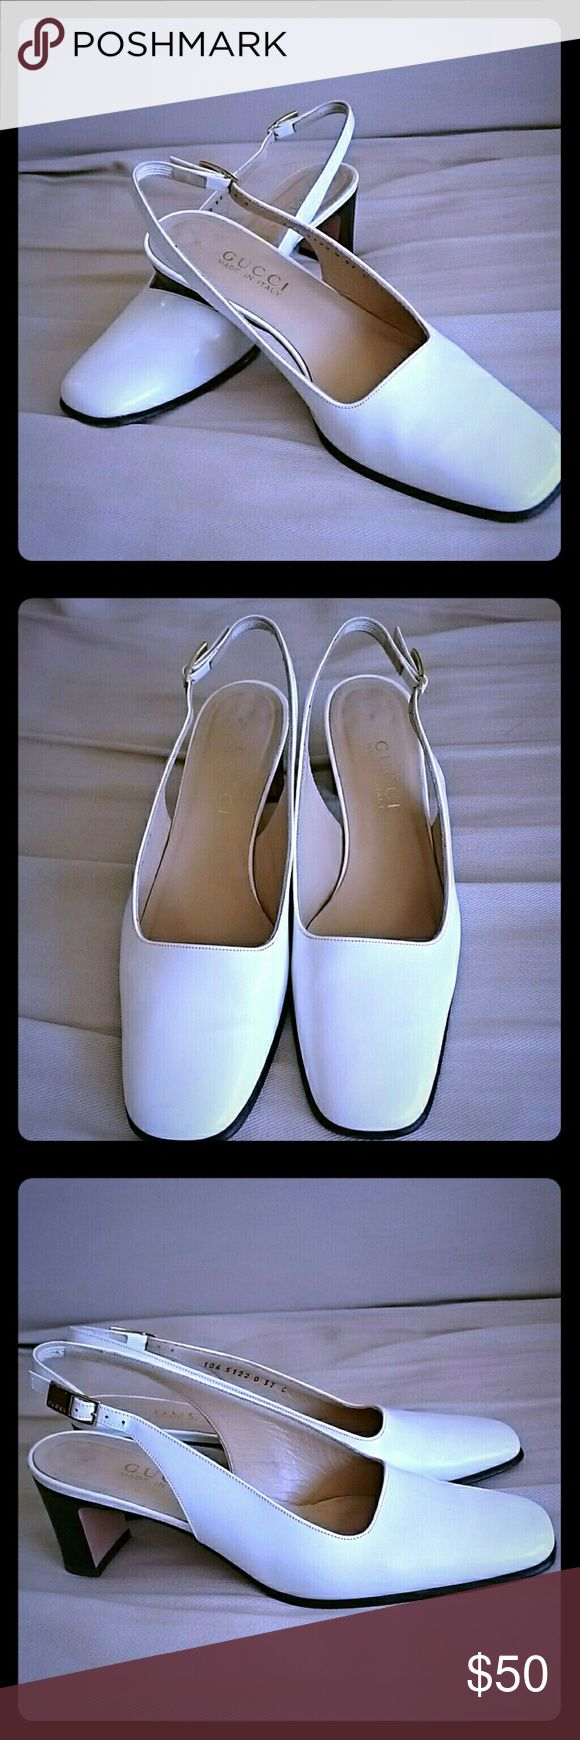 White Guuci slingback pump Authentic white Gucci slingback pump, lightly used. Heels are thicker, easier to walk in the city Gucci Shoes Heels